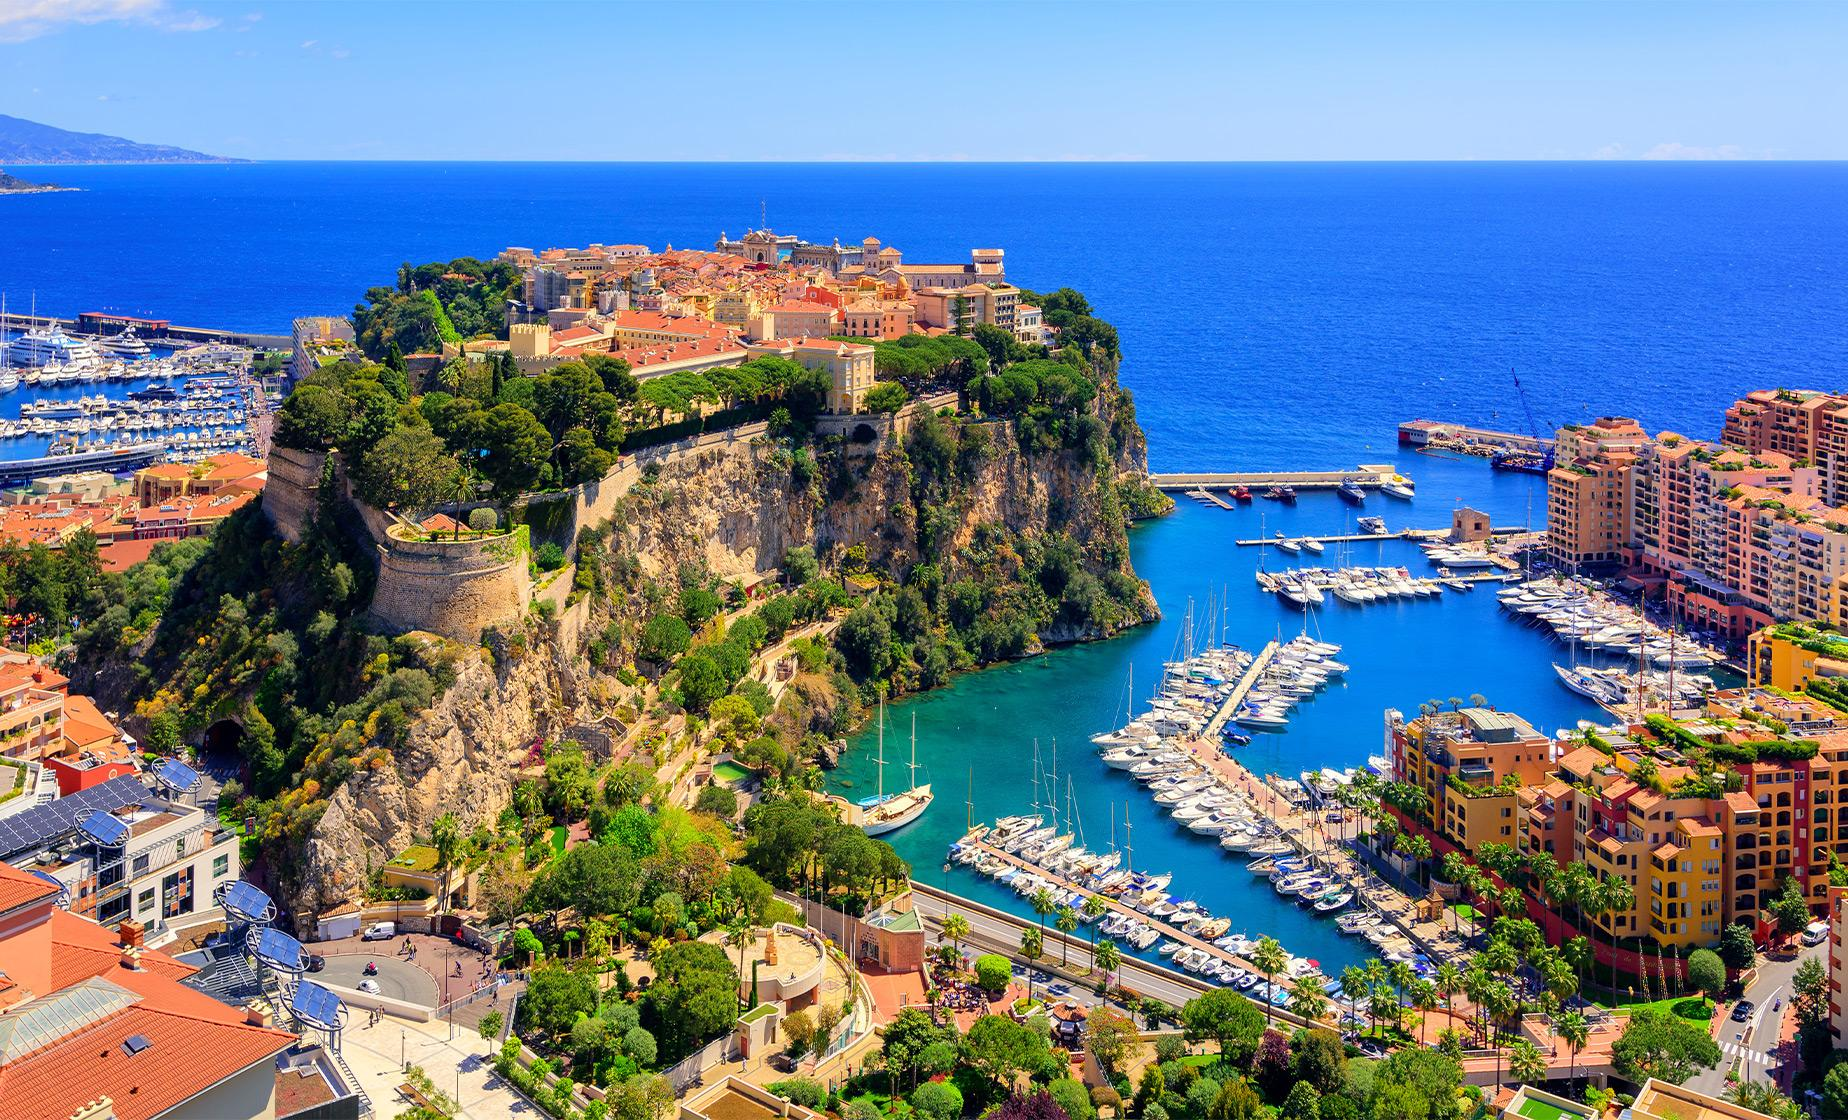 French Riviera Tour from Nice (Fragonard, Eze, La Turbie)